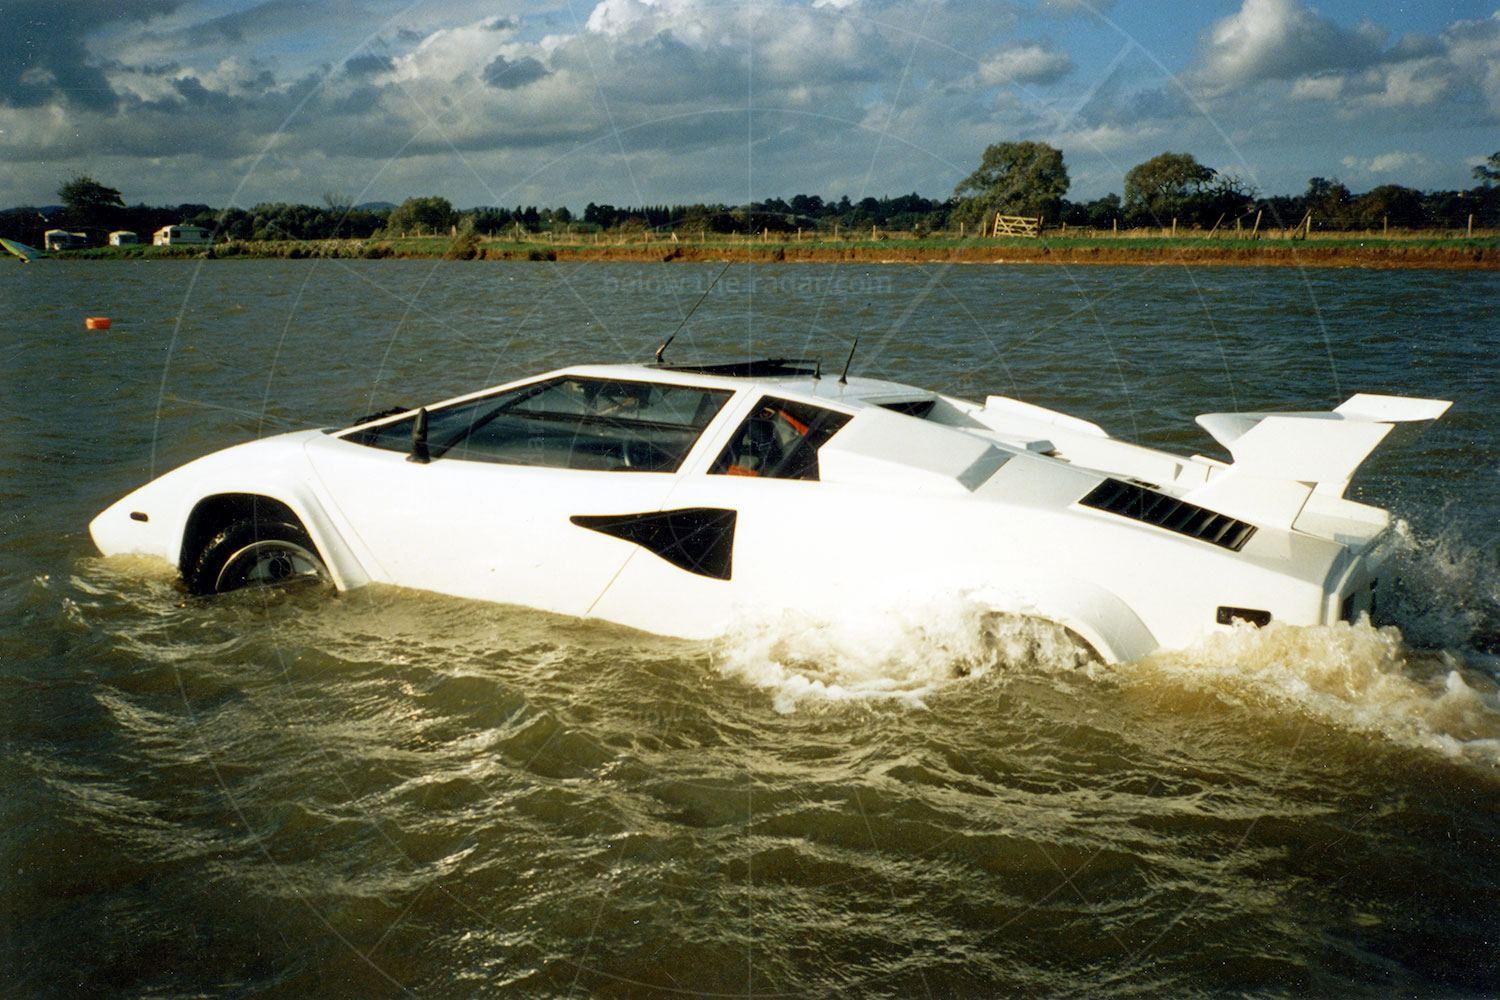 Mike Ryan's amphibious Lamborghini Countach